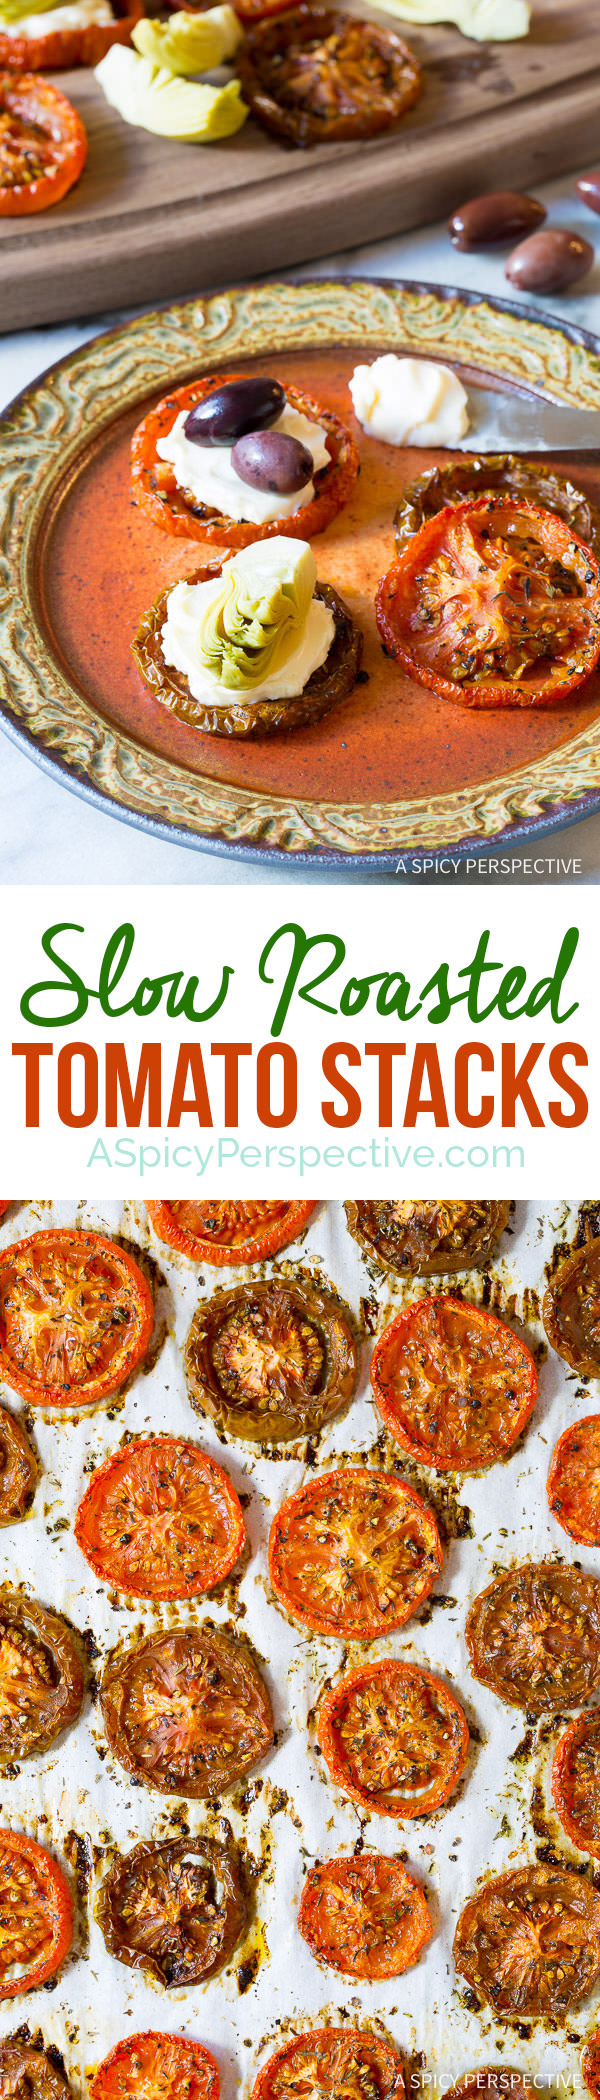 Dazzling Oven Roasted Tomato Stack Snacks | ASpicyPerspective.com